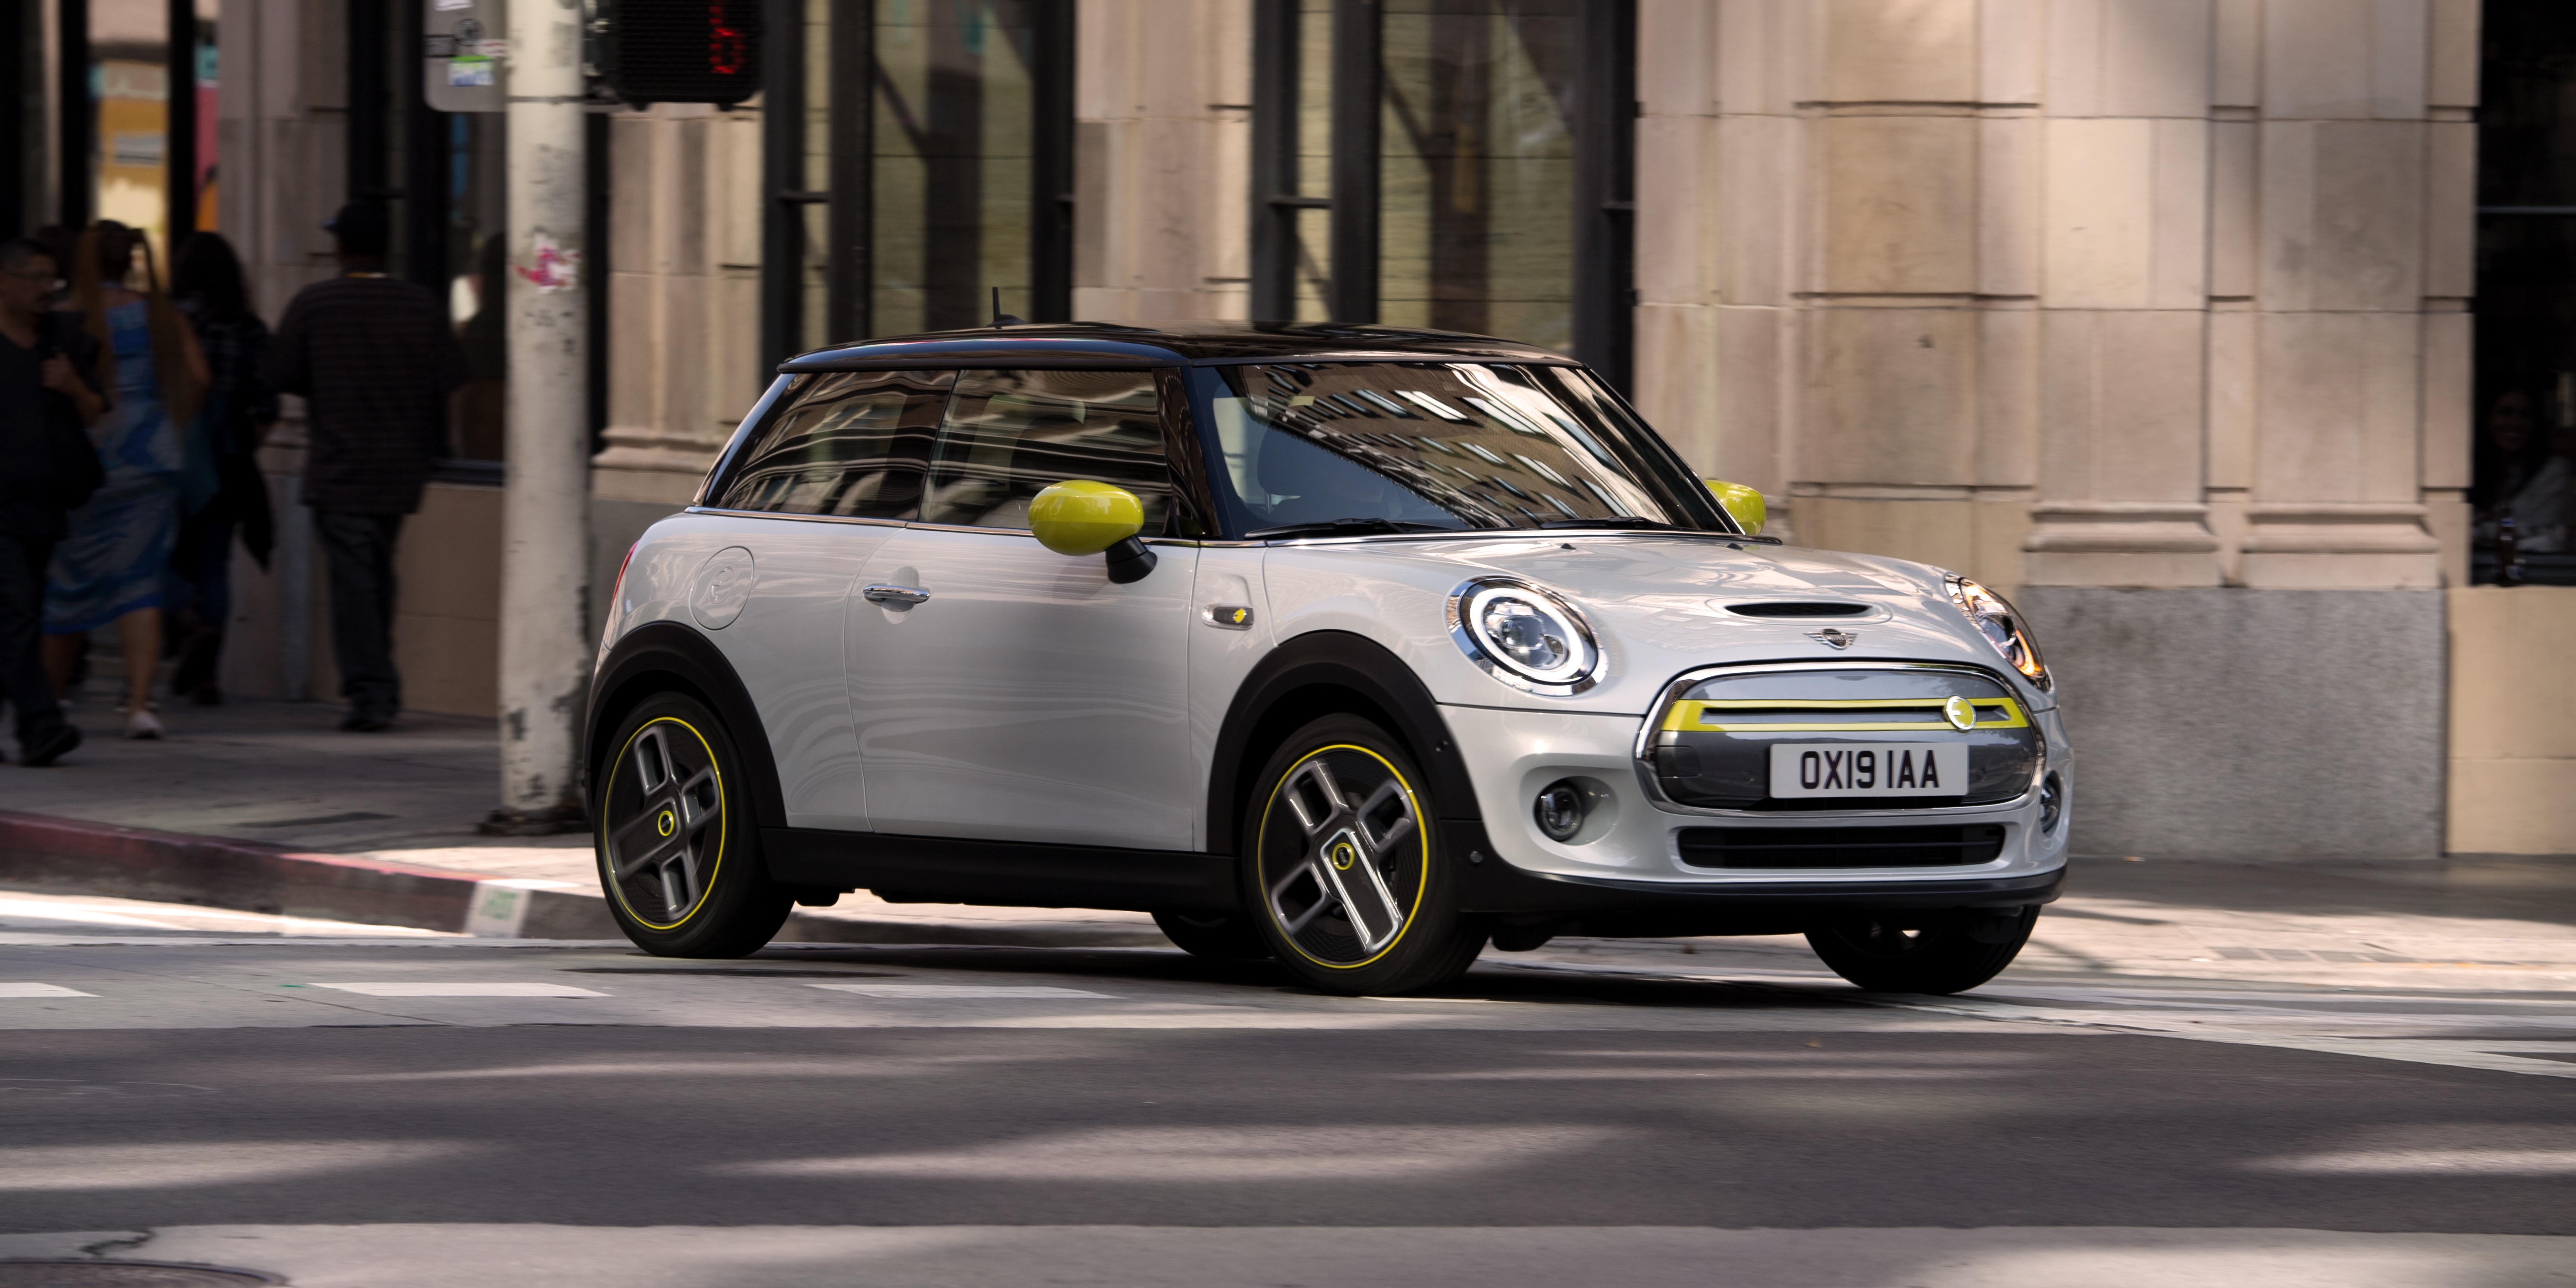 BMW received over 45,000 reservations for the new all-electric Mini Cooper SE - Electrek